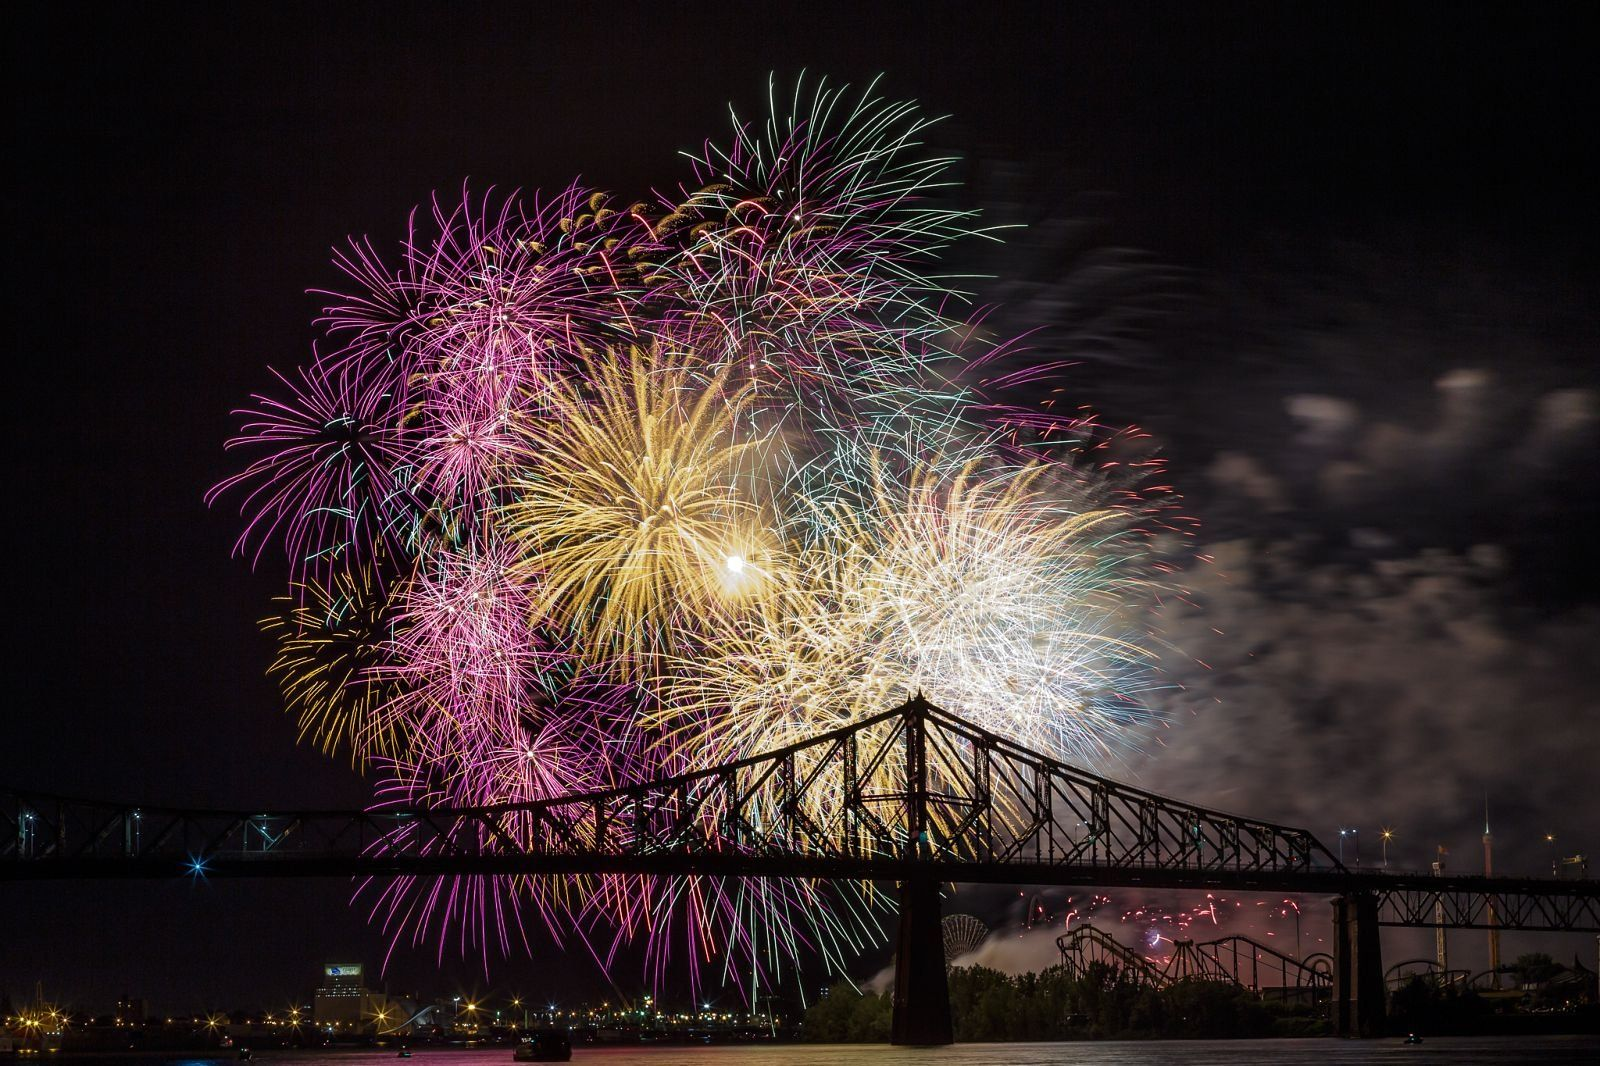 montreal_fireworks_competition_201720_1100.jpg